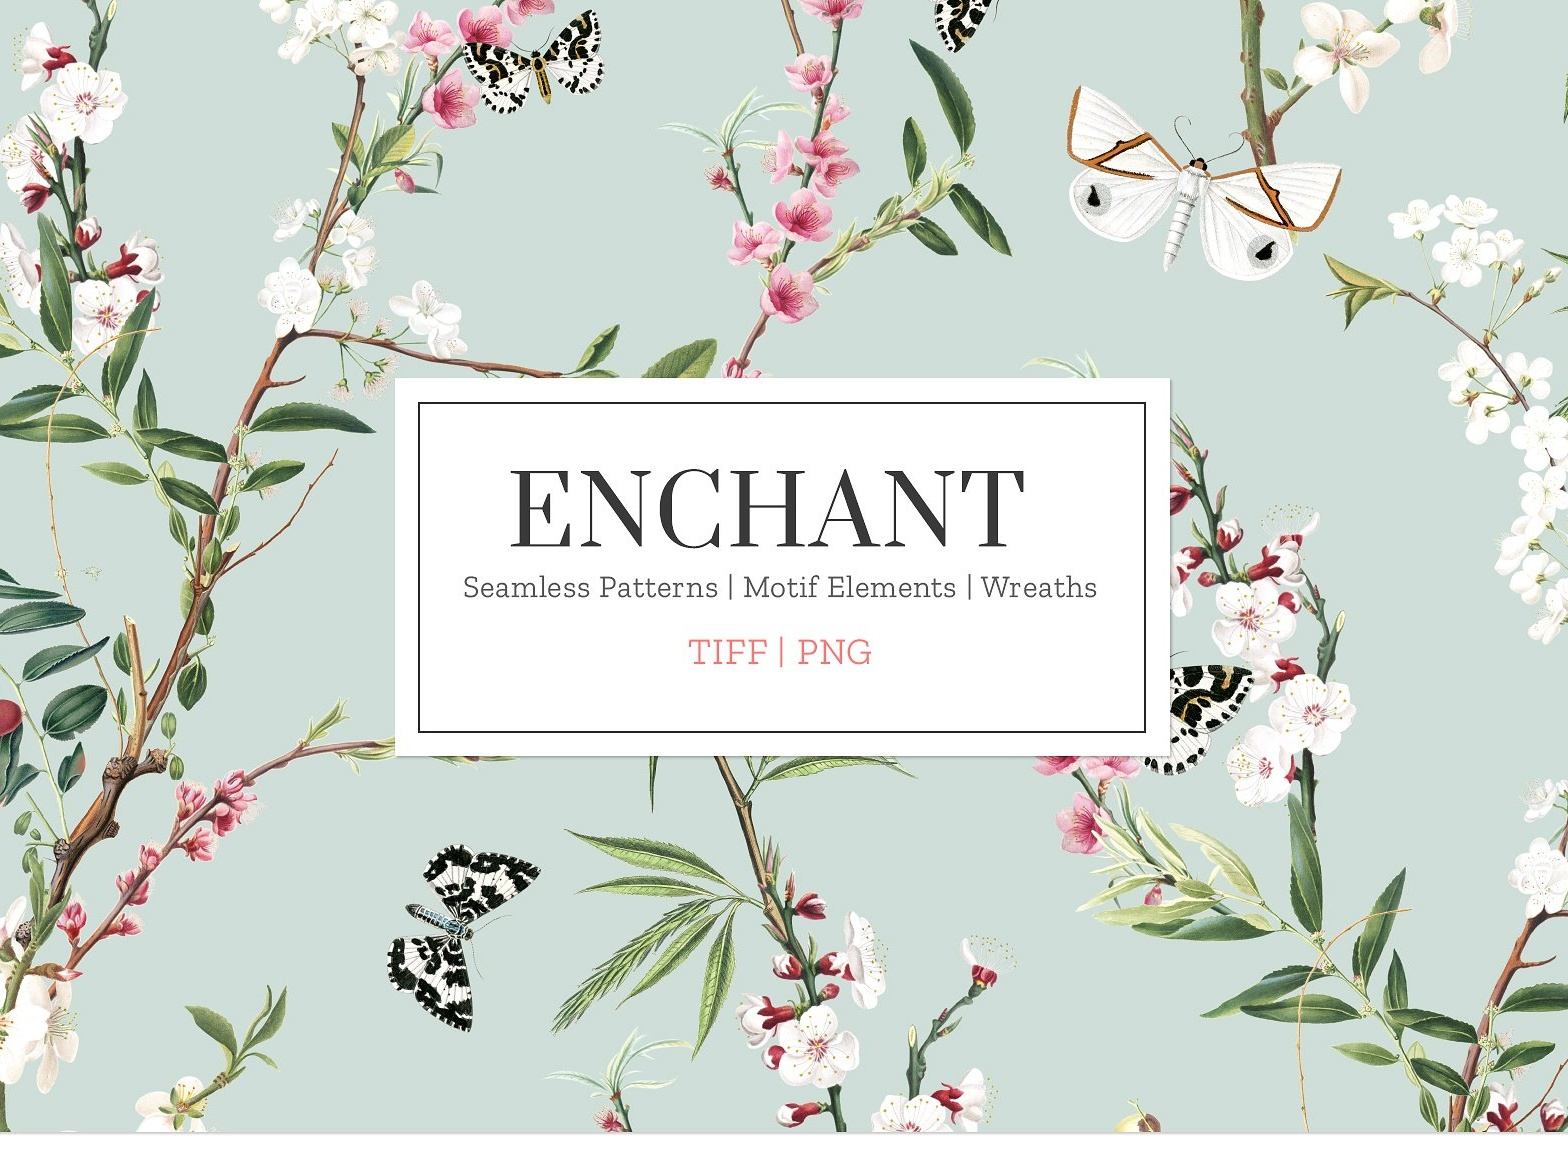 Enchant, Elegant & Exquisite! by Graphics Collection on Dribbble